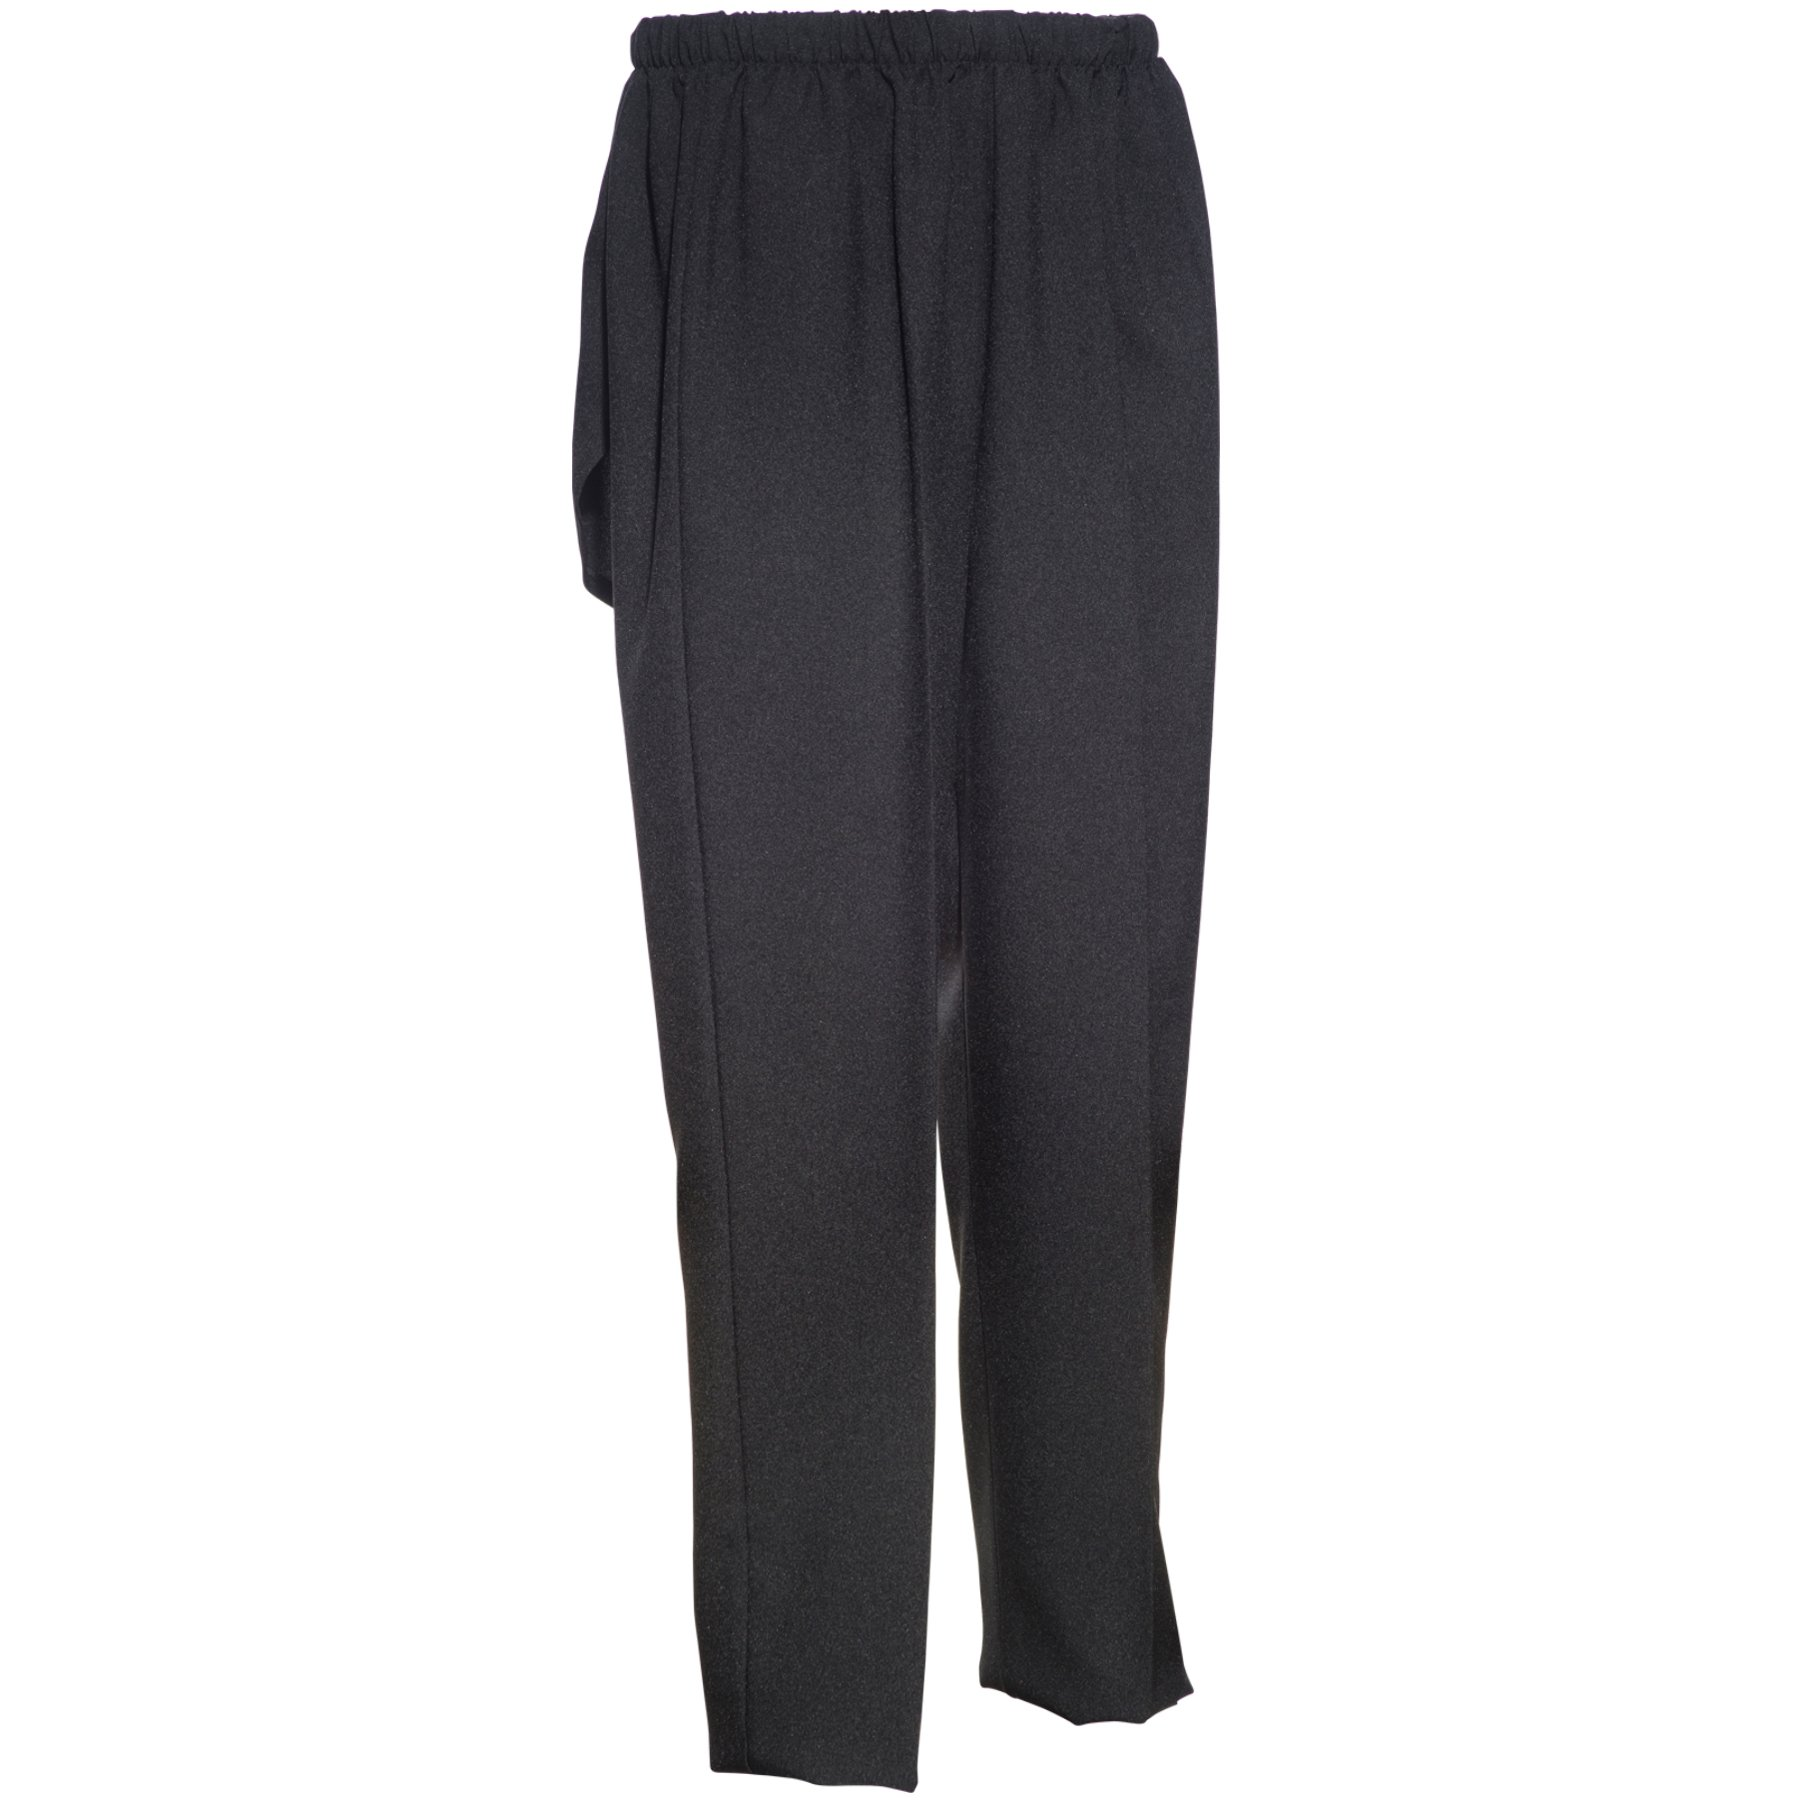 Adaptive Modesty Incontinence Pants With Covered Cut-Out Seat Black Polyester (3X)